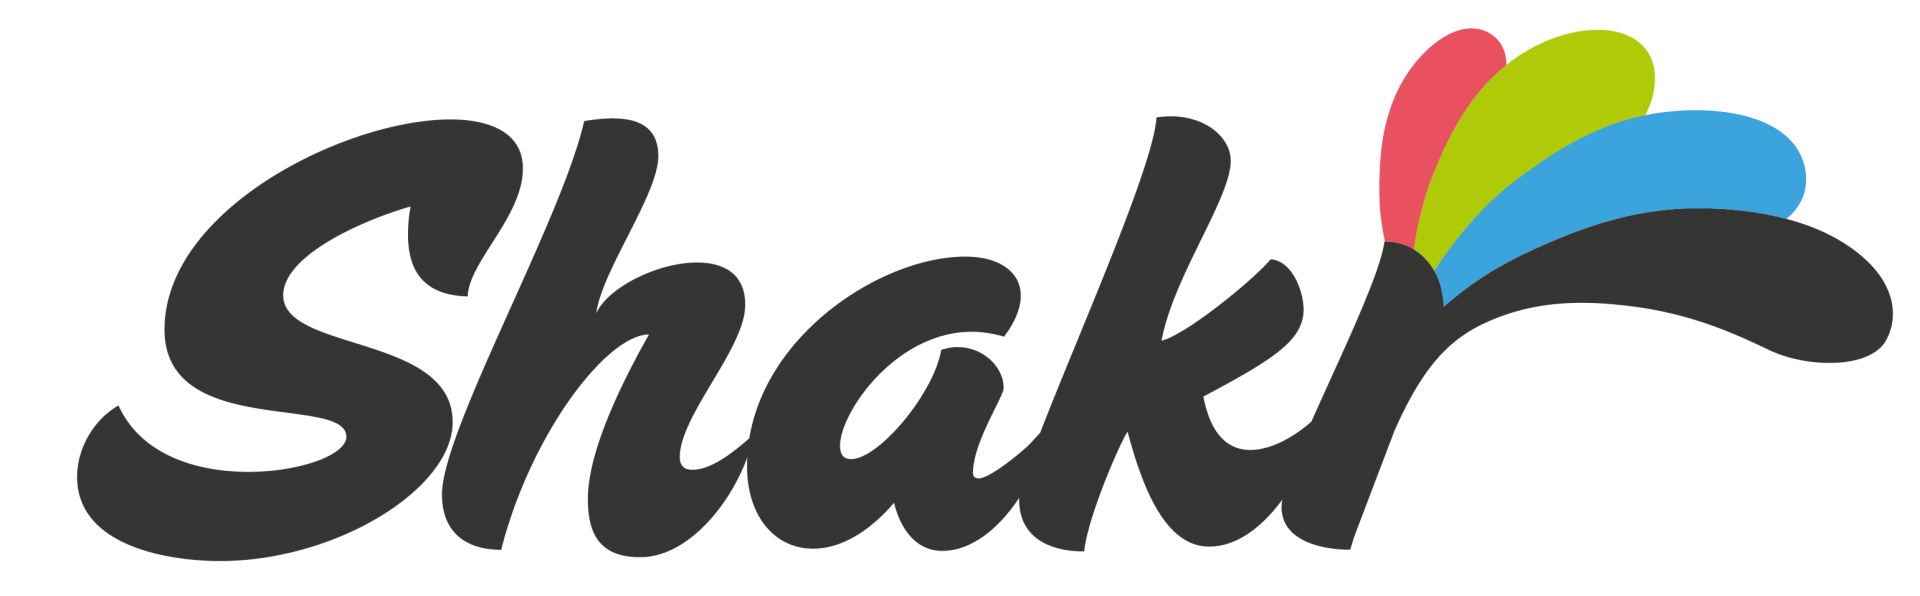 Logo for Shakr Media